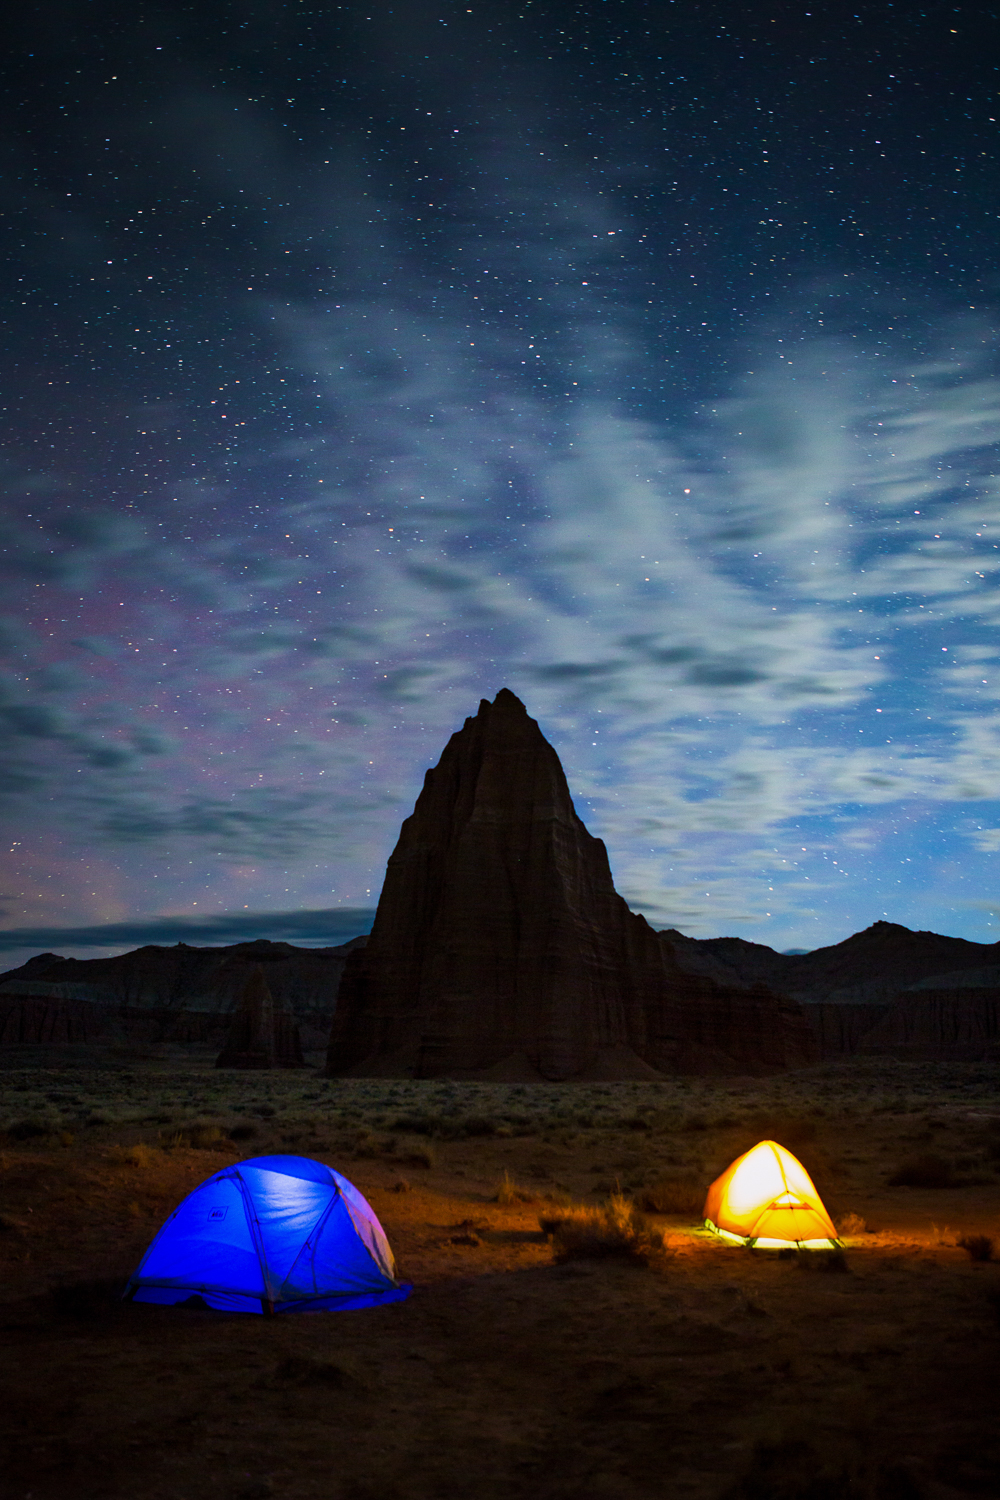 Camping at the foot of the Temple of the Sun and Moon, Capitol Reef, Utah. One of the calmest and quietest night of camping we've ever experienced. We had this all to ourselves.